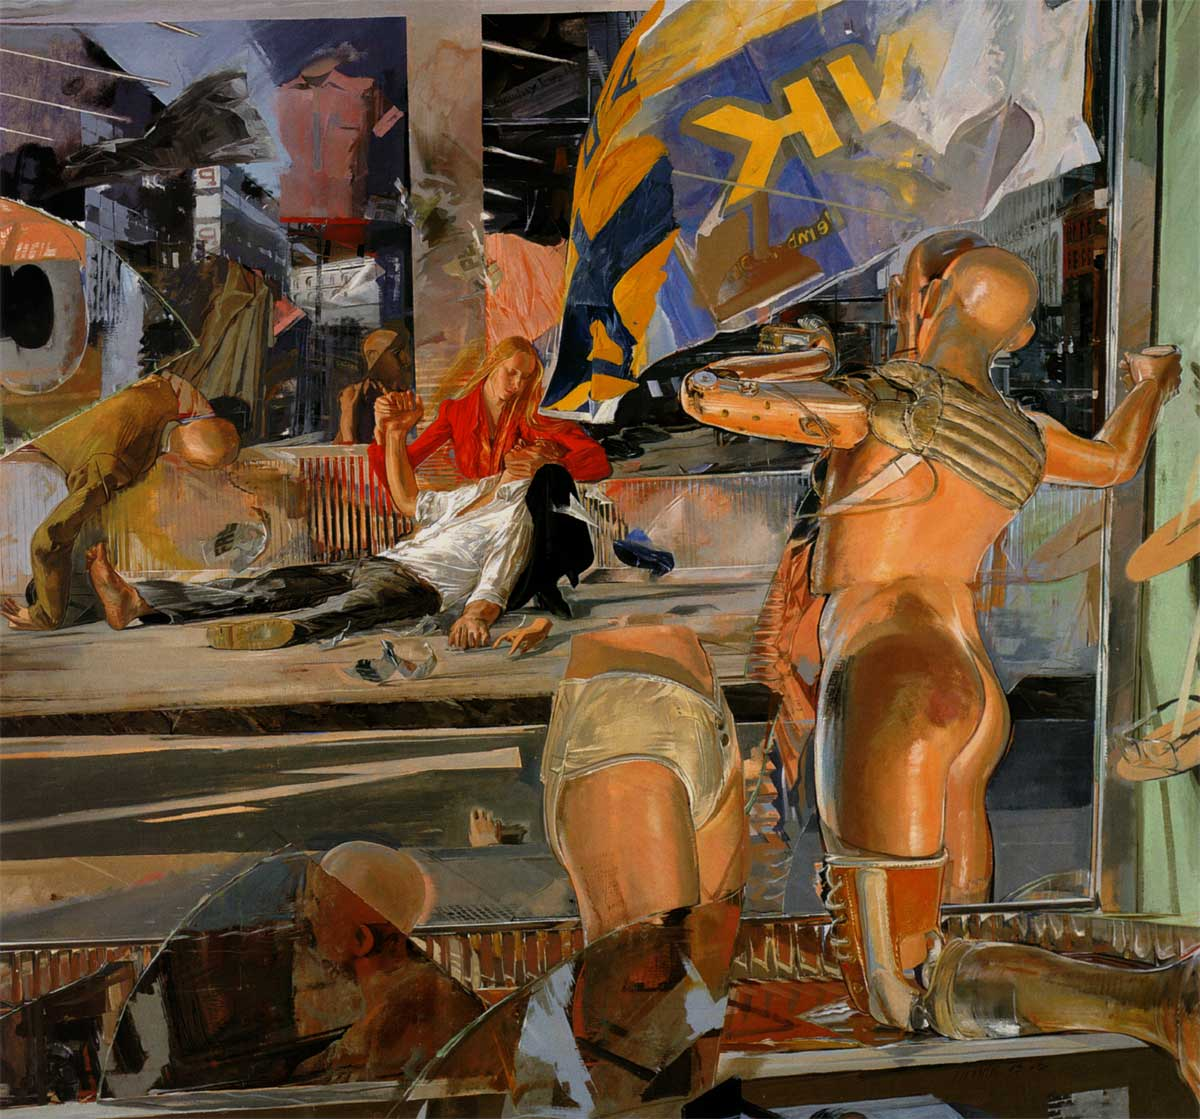 Painting by Jerome Witkin